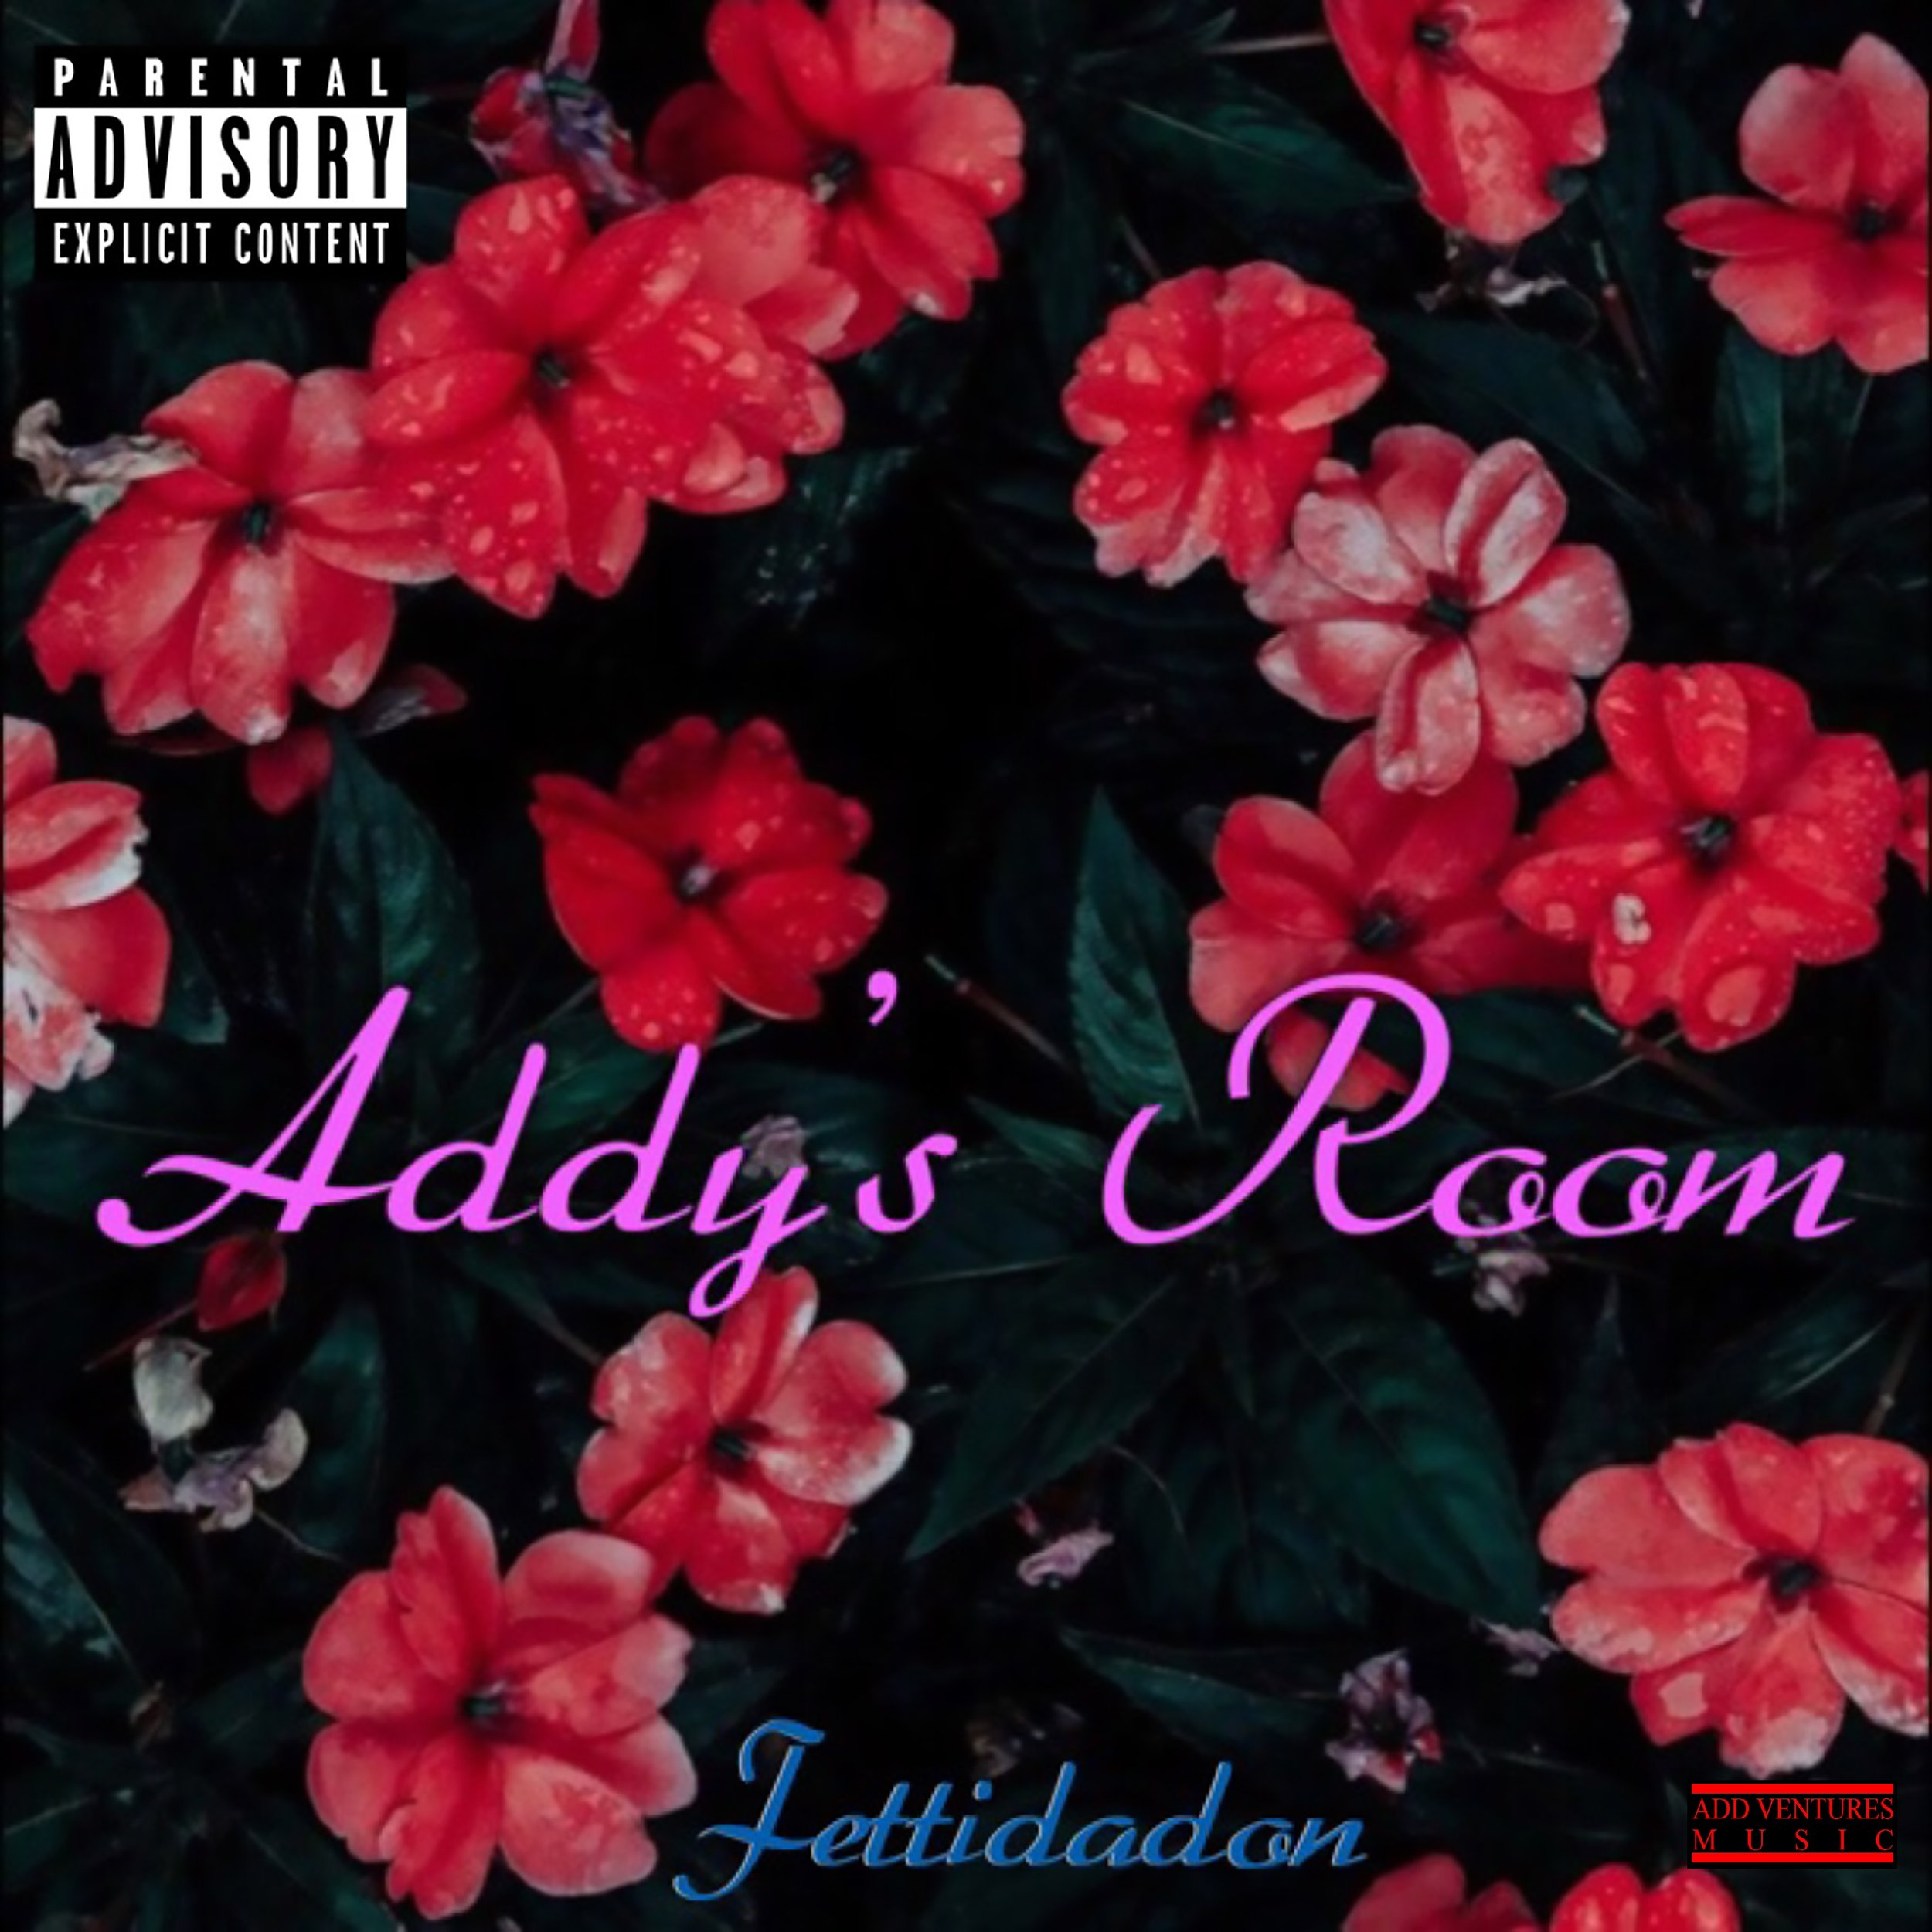 Fetti Da Don - Addy's Room - Explicit Single Cover.jpeg